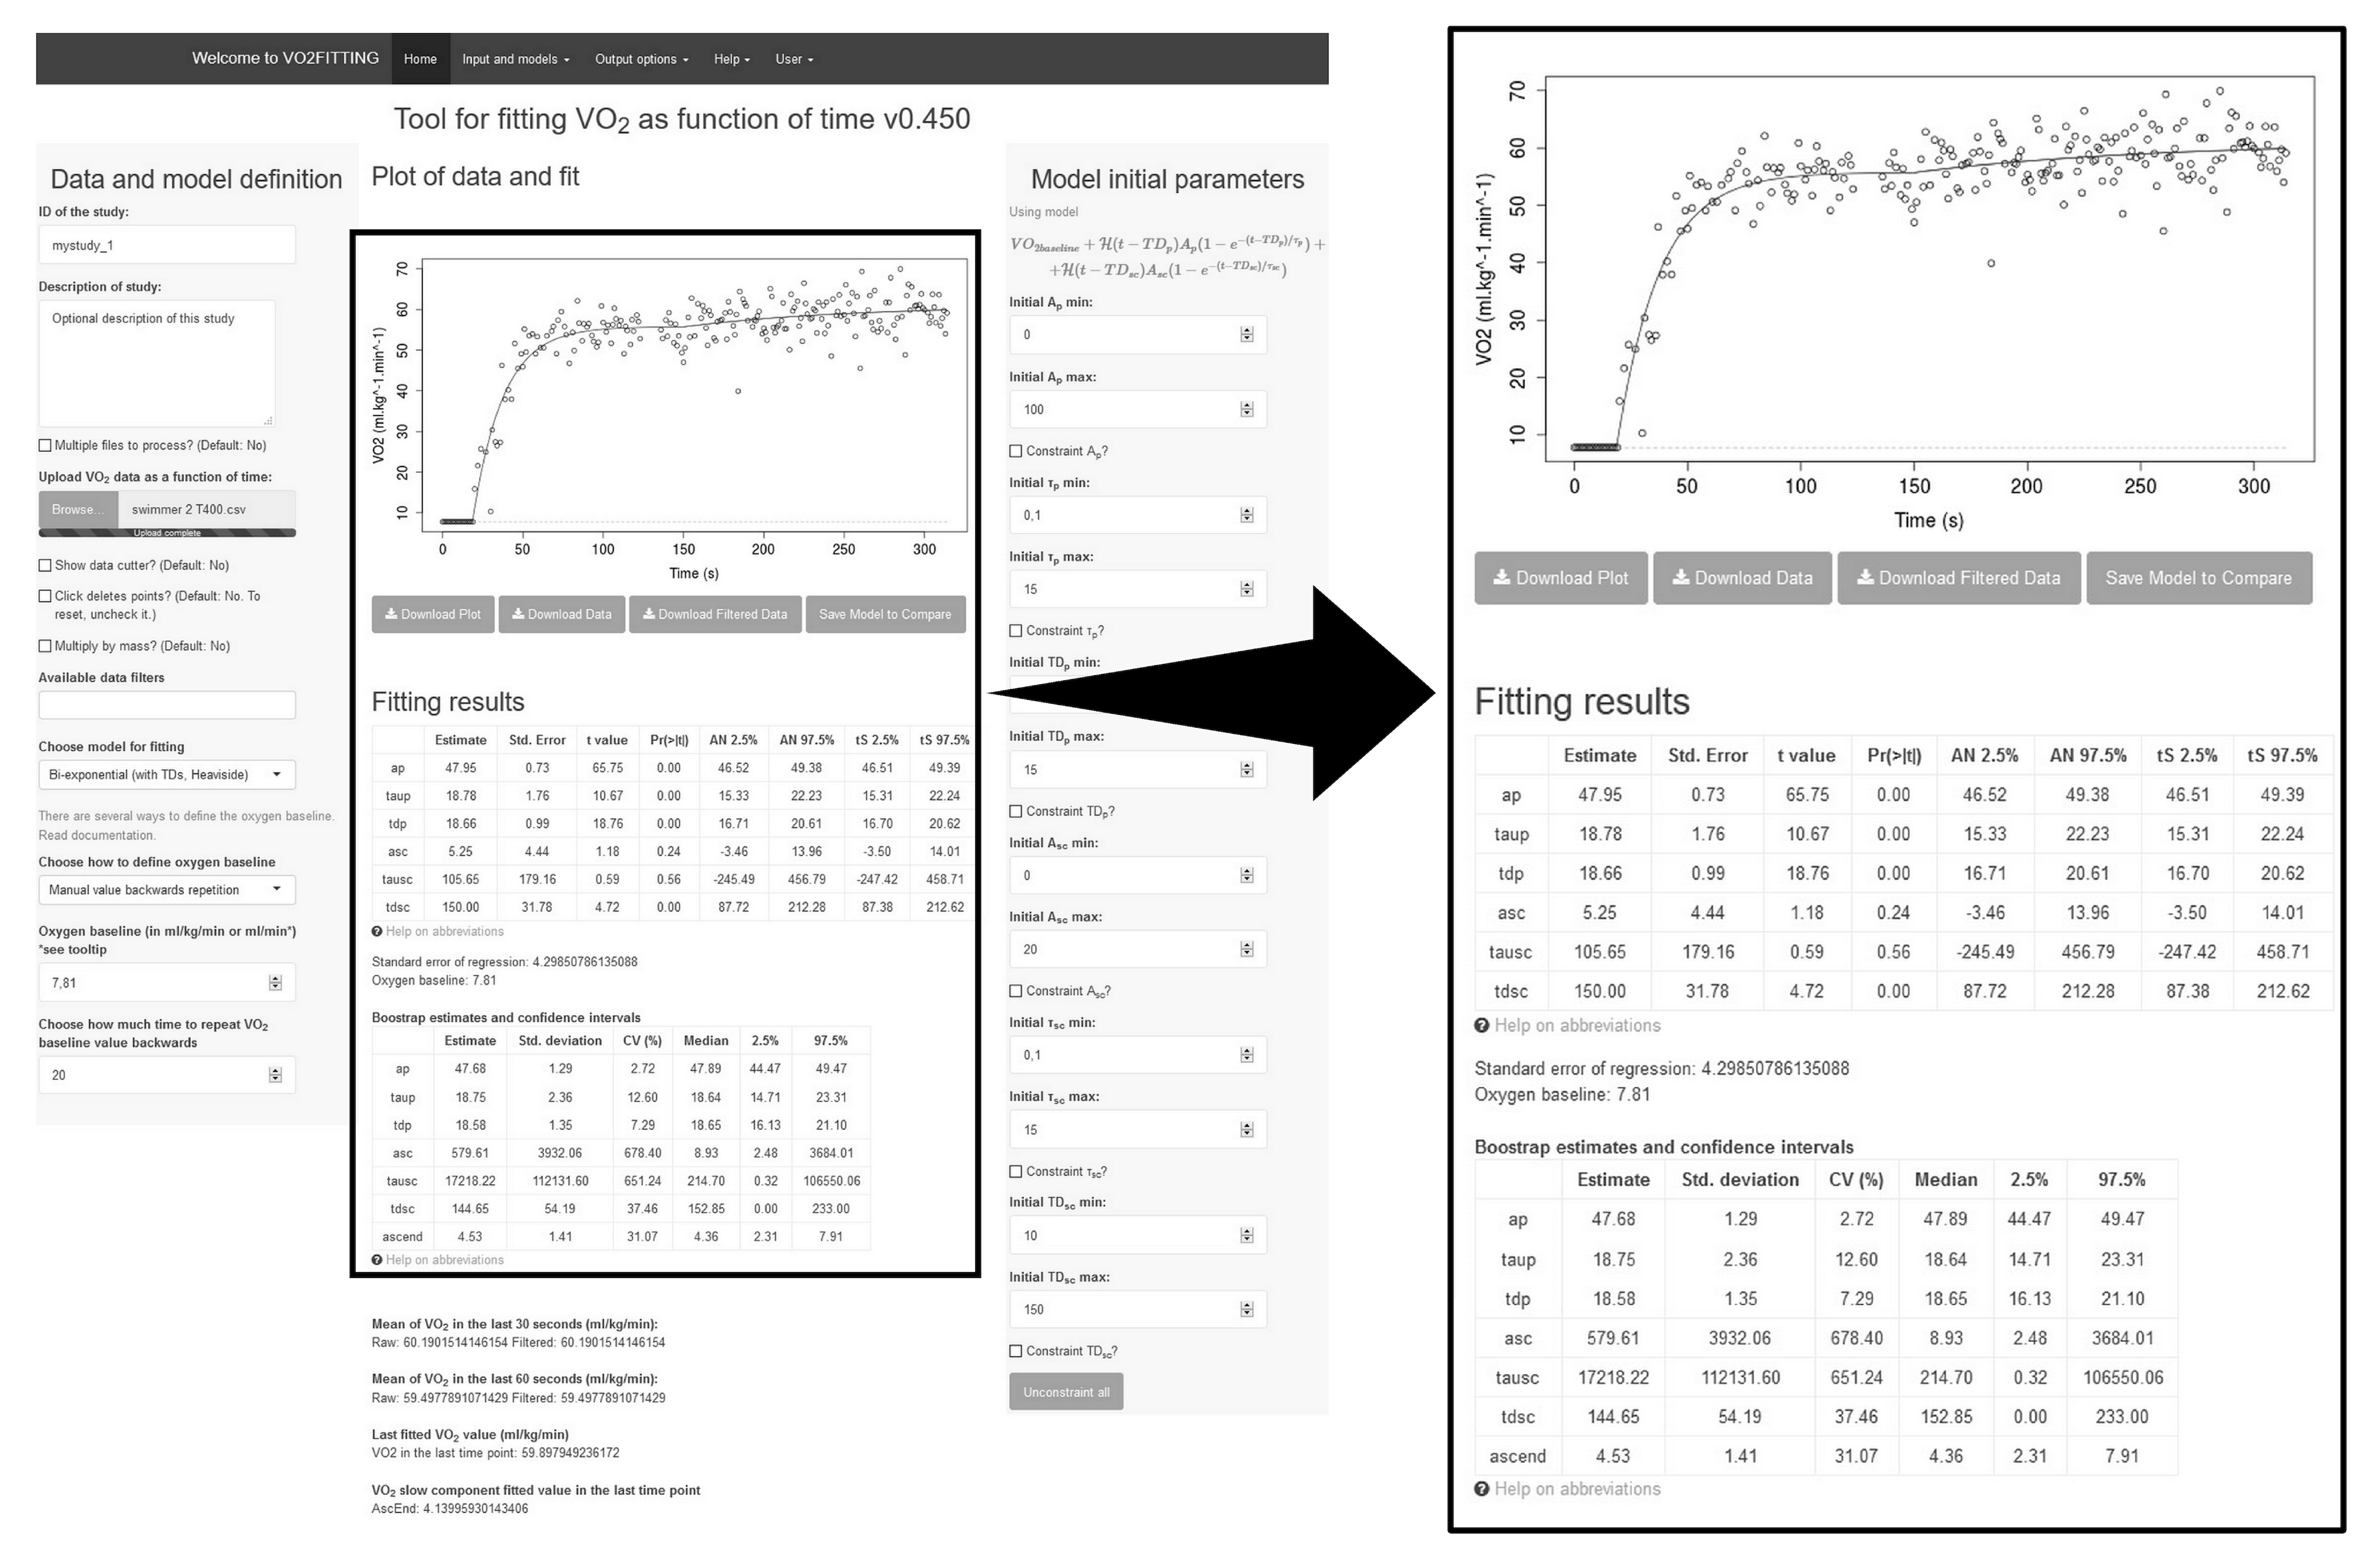 Sports | Free Full-Text | VO2FITTING: A Free and Open-Source